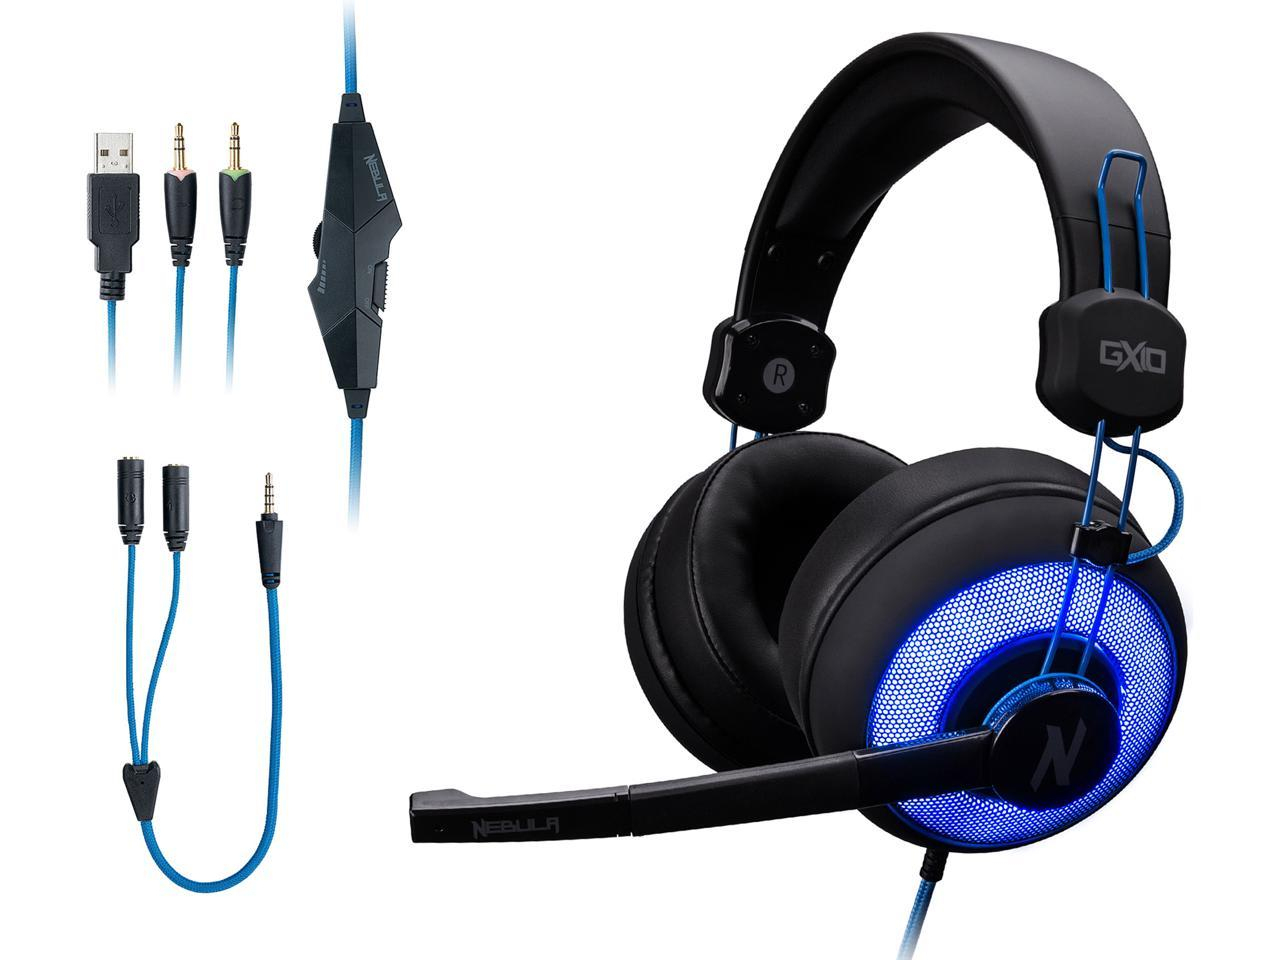 Rosewill Nebula Gx10 Gaming Headset With Microphone For Pc / Ps4 - Wiring Diagram Of Rosewill Usb Headset